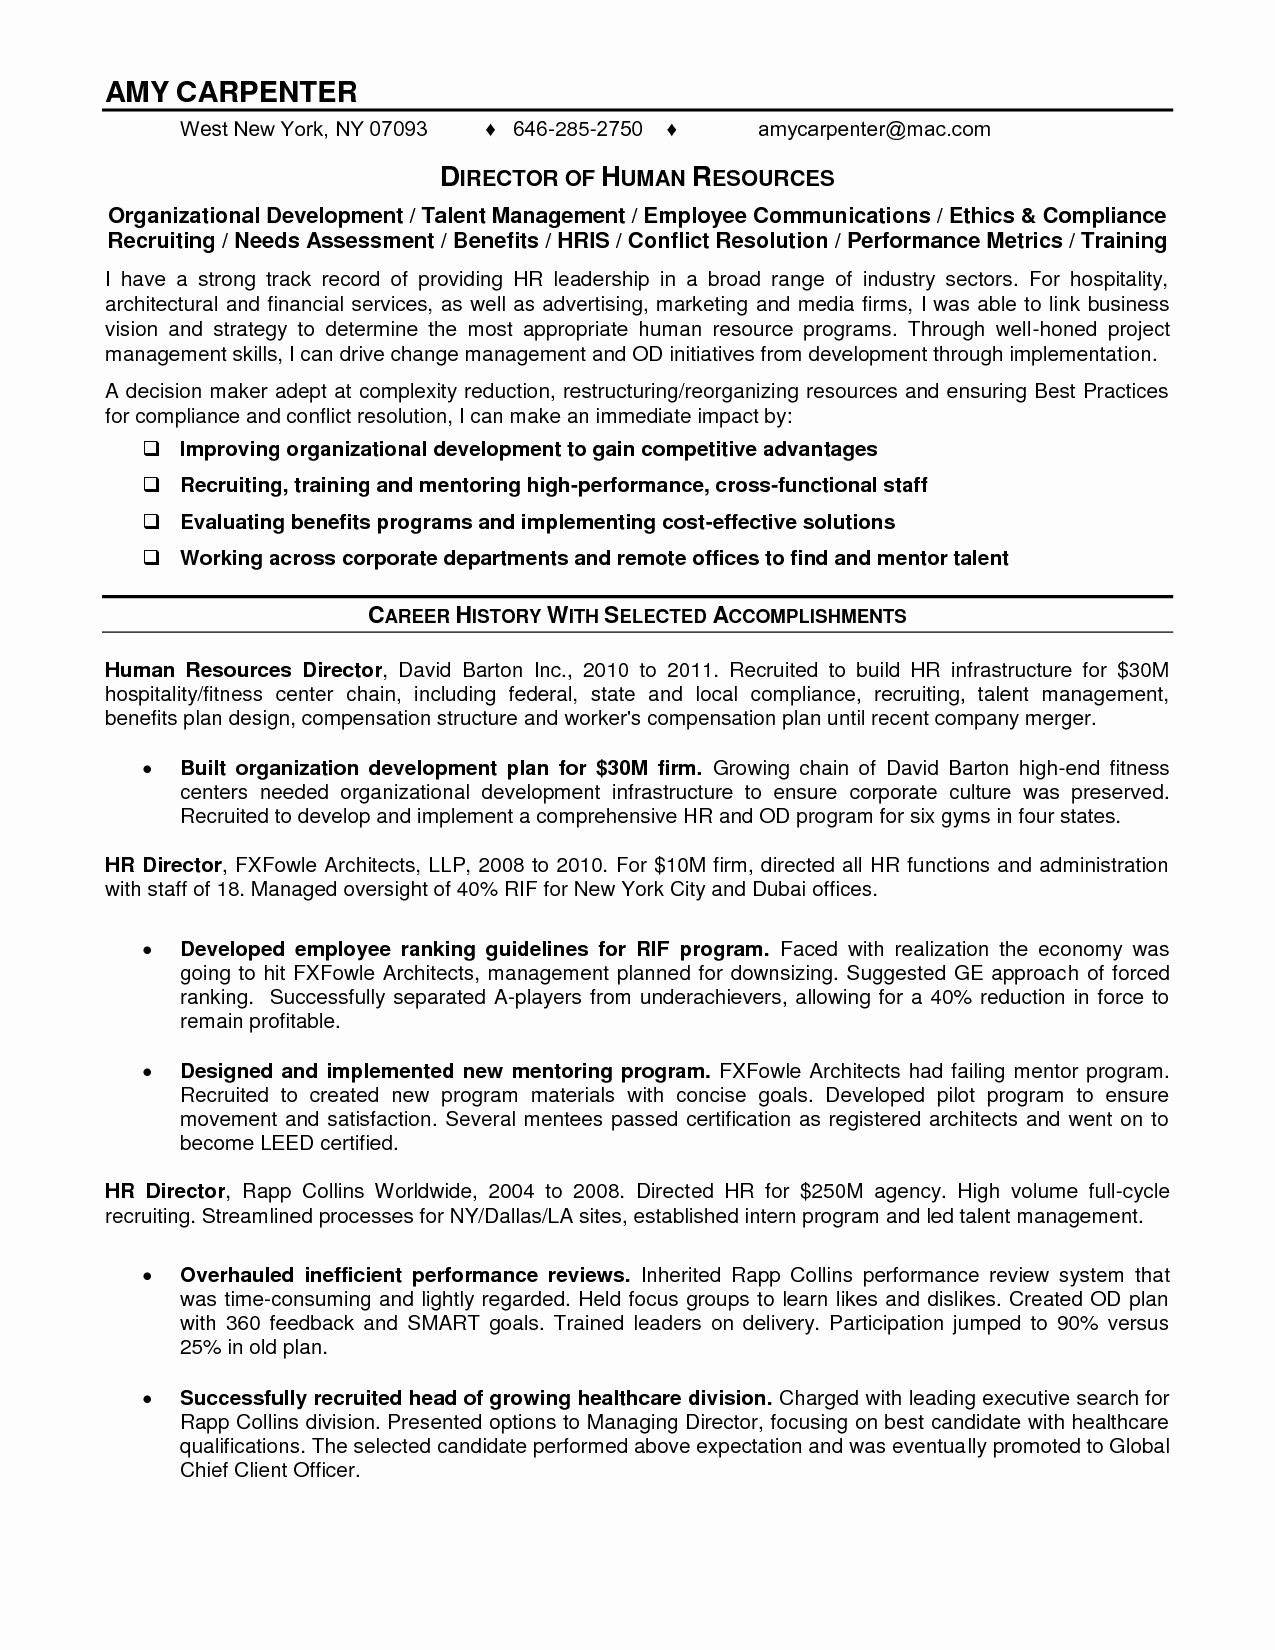 Business Contract Termination Letter Template - Business Development Contract Template Best Contract Termination